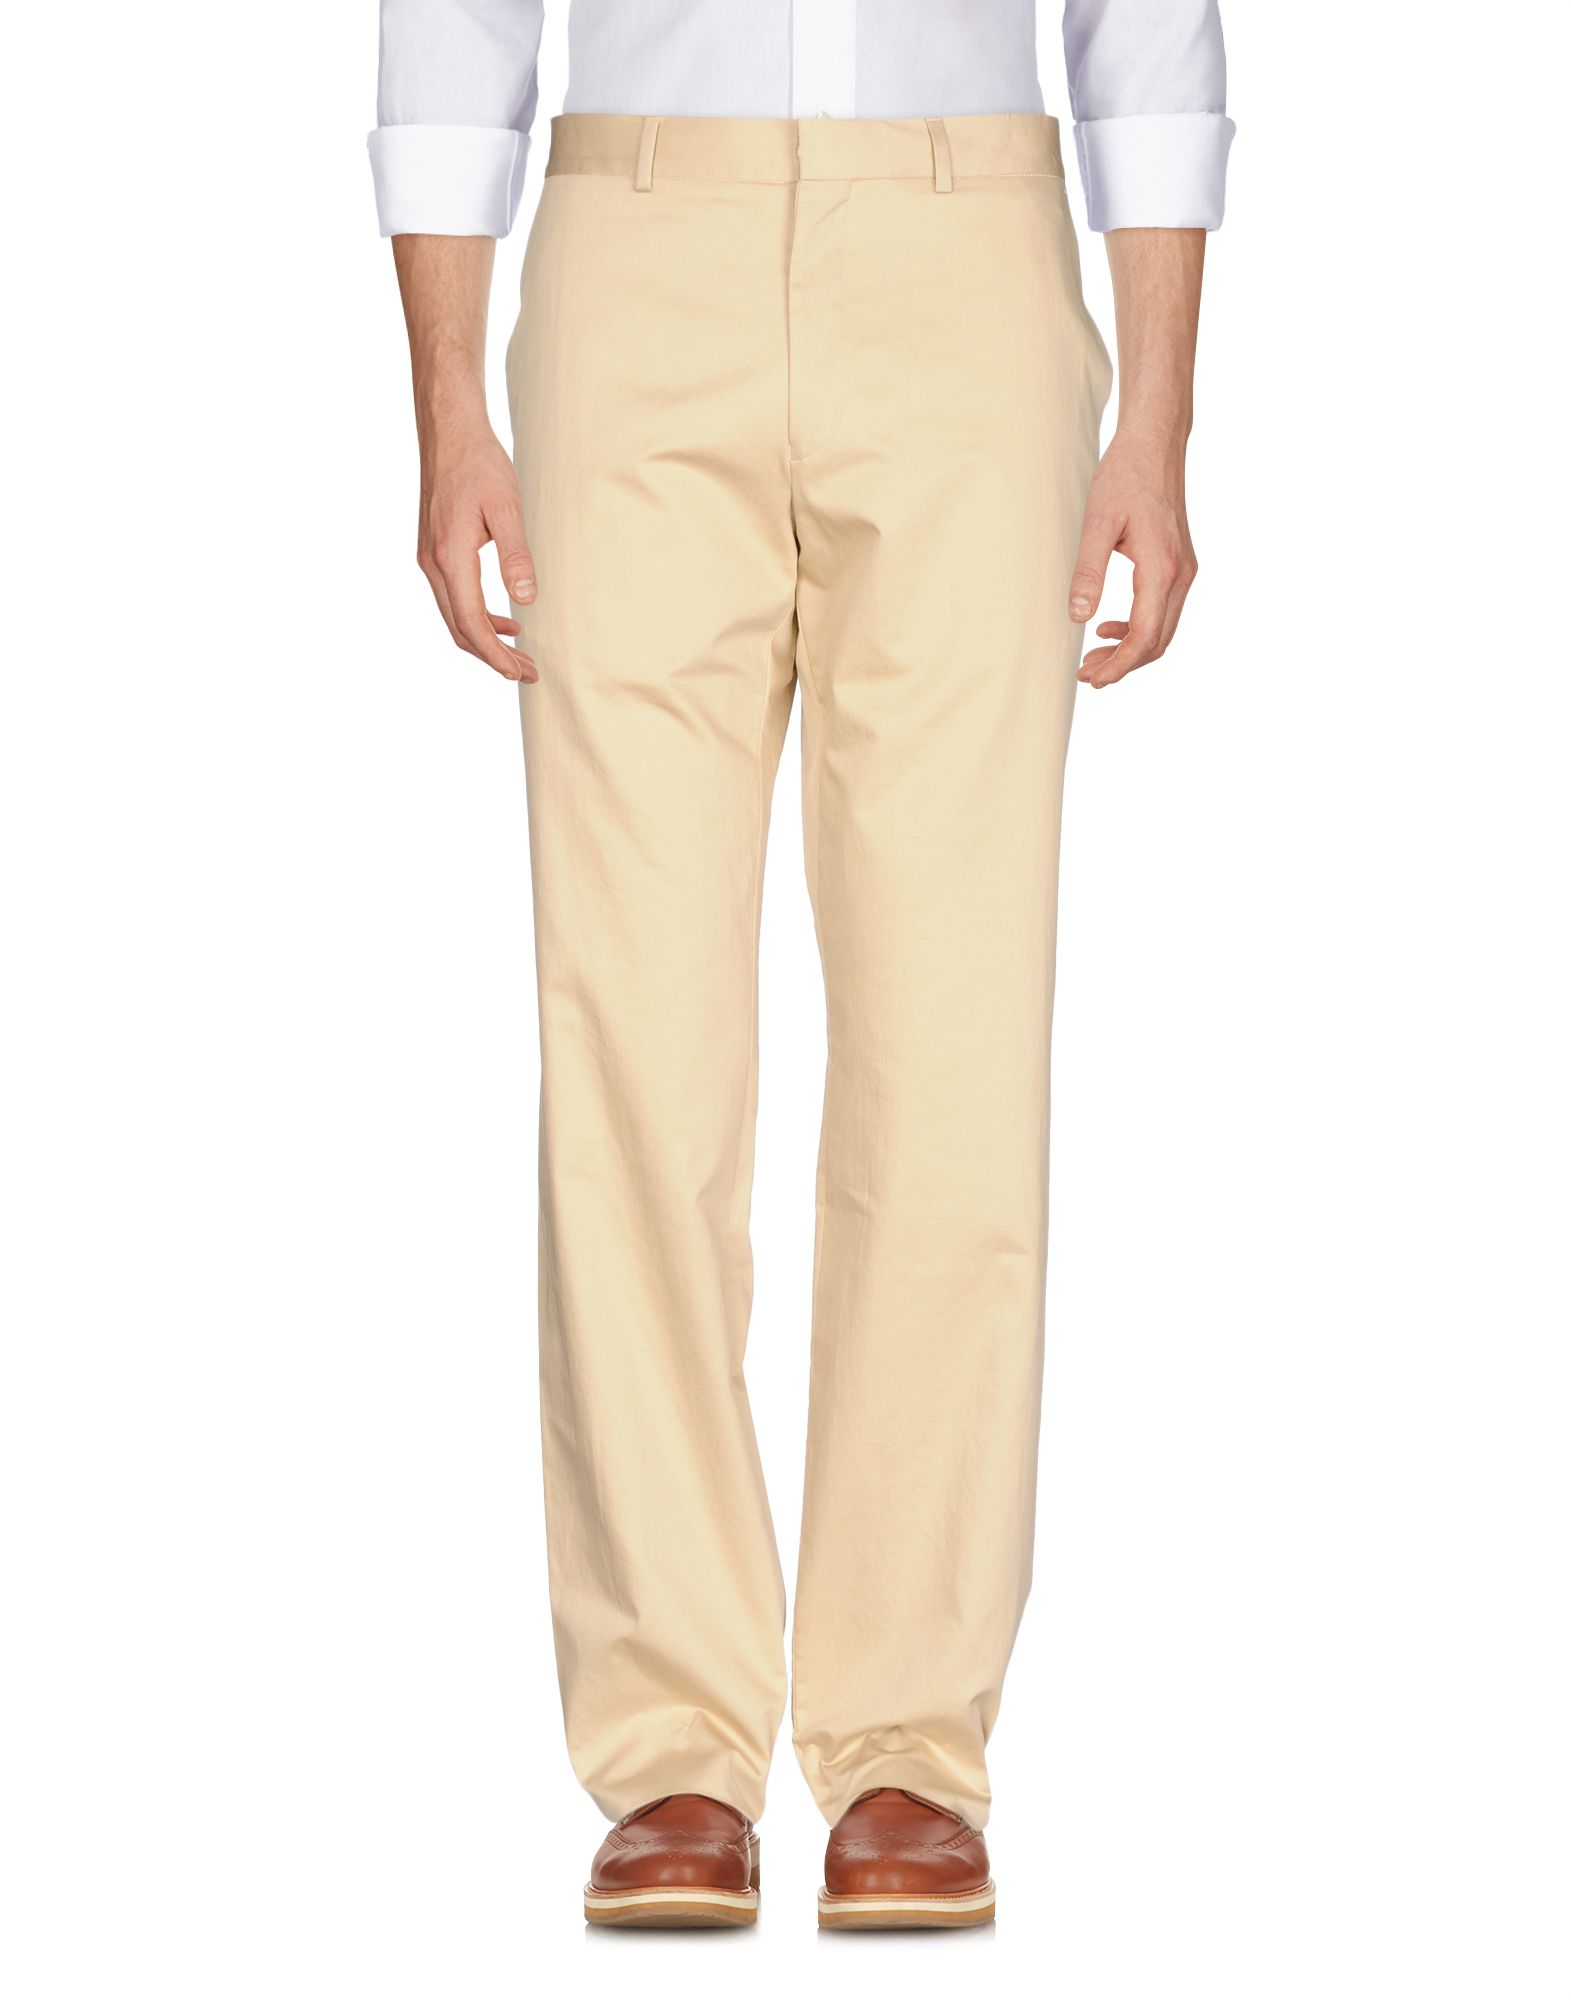 Chinos Ps 36966151JF By Paul Smith Uomo - 36966151JF Ps abd7d8